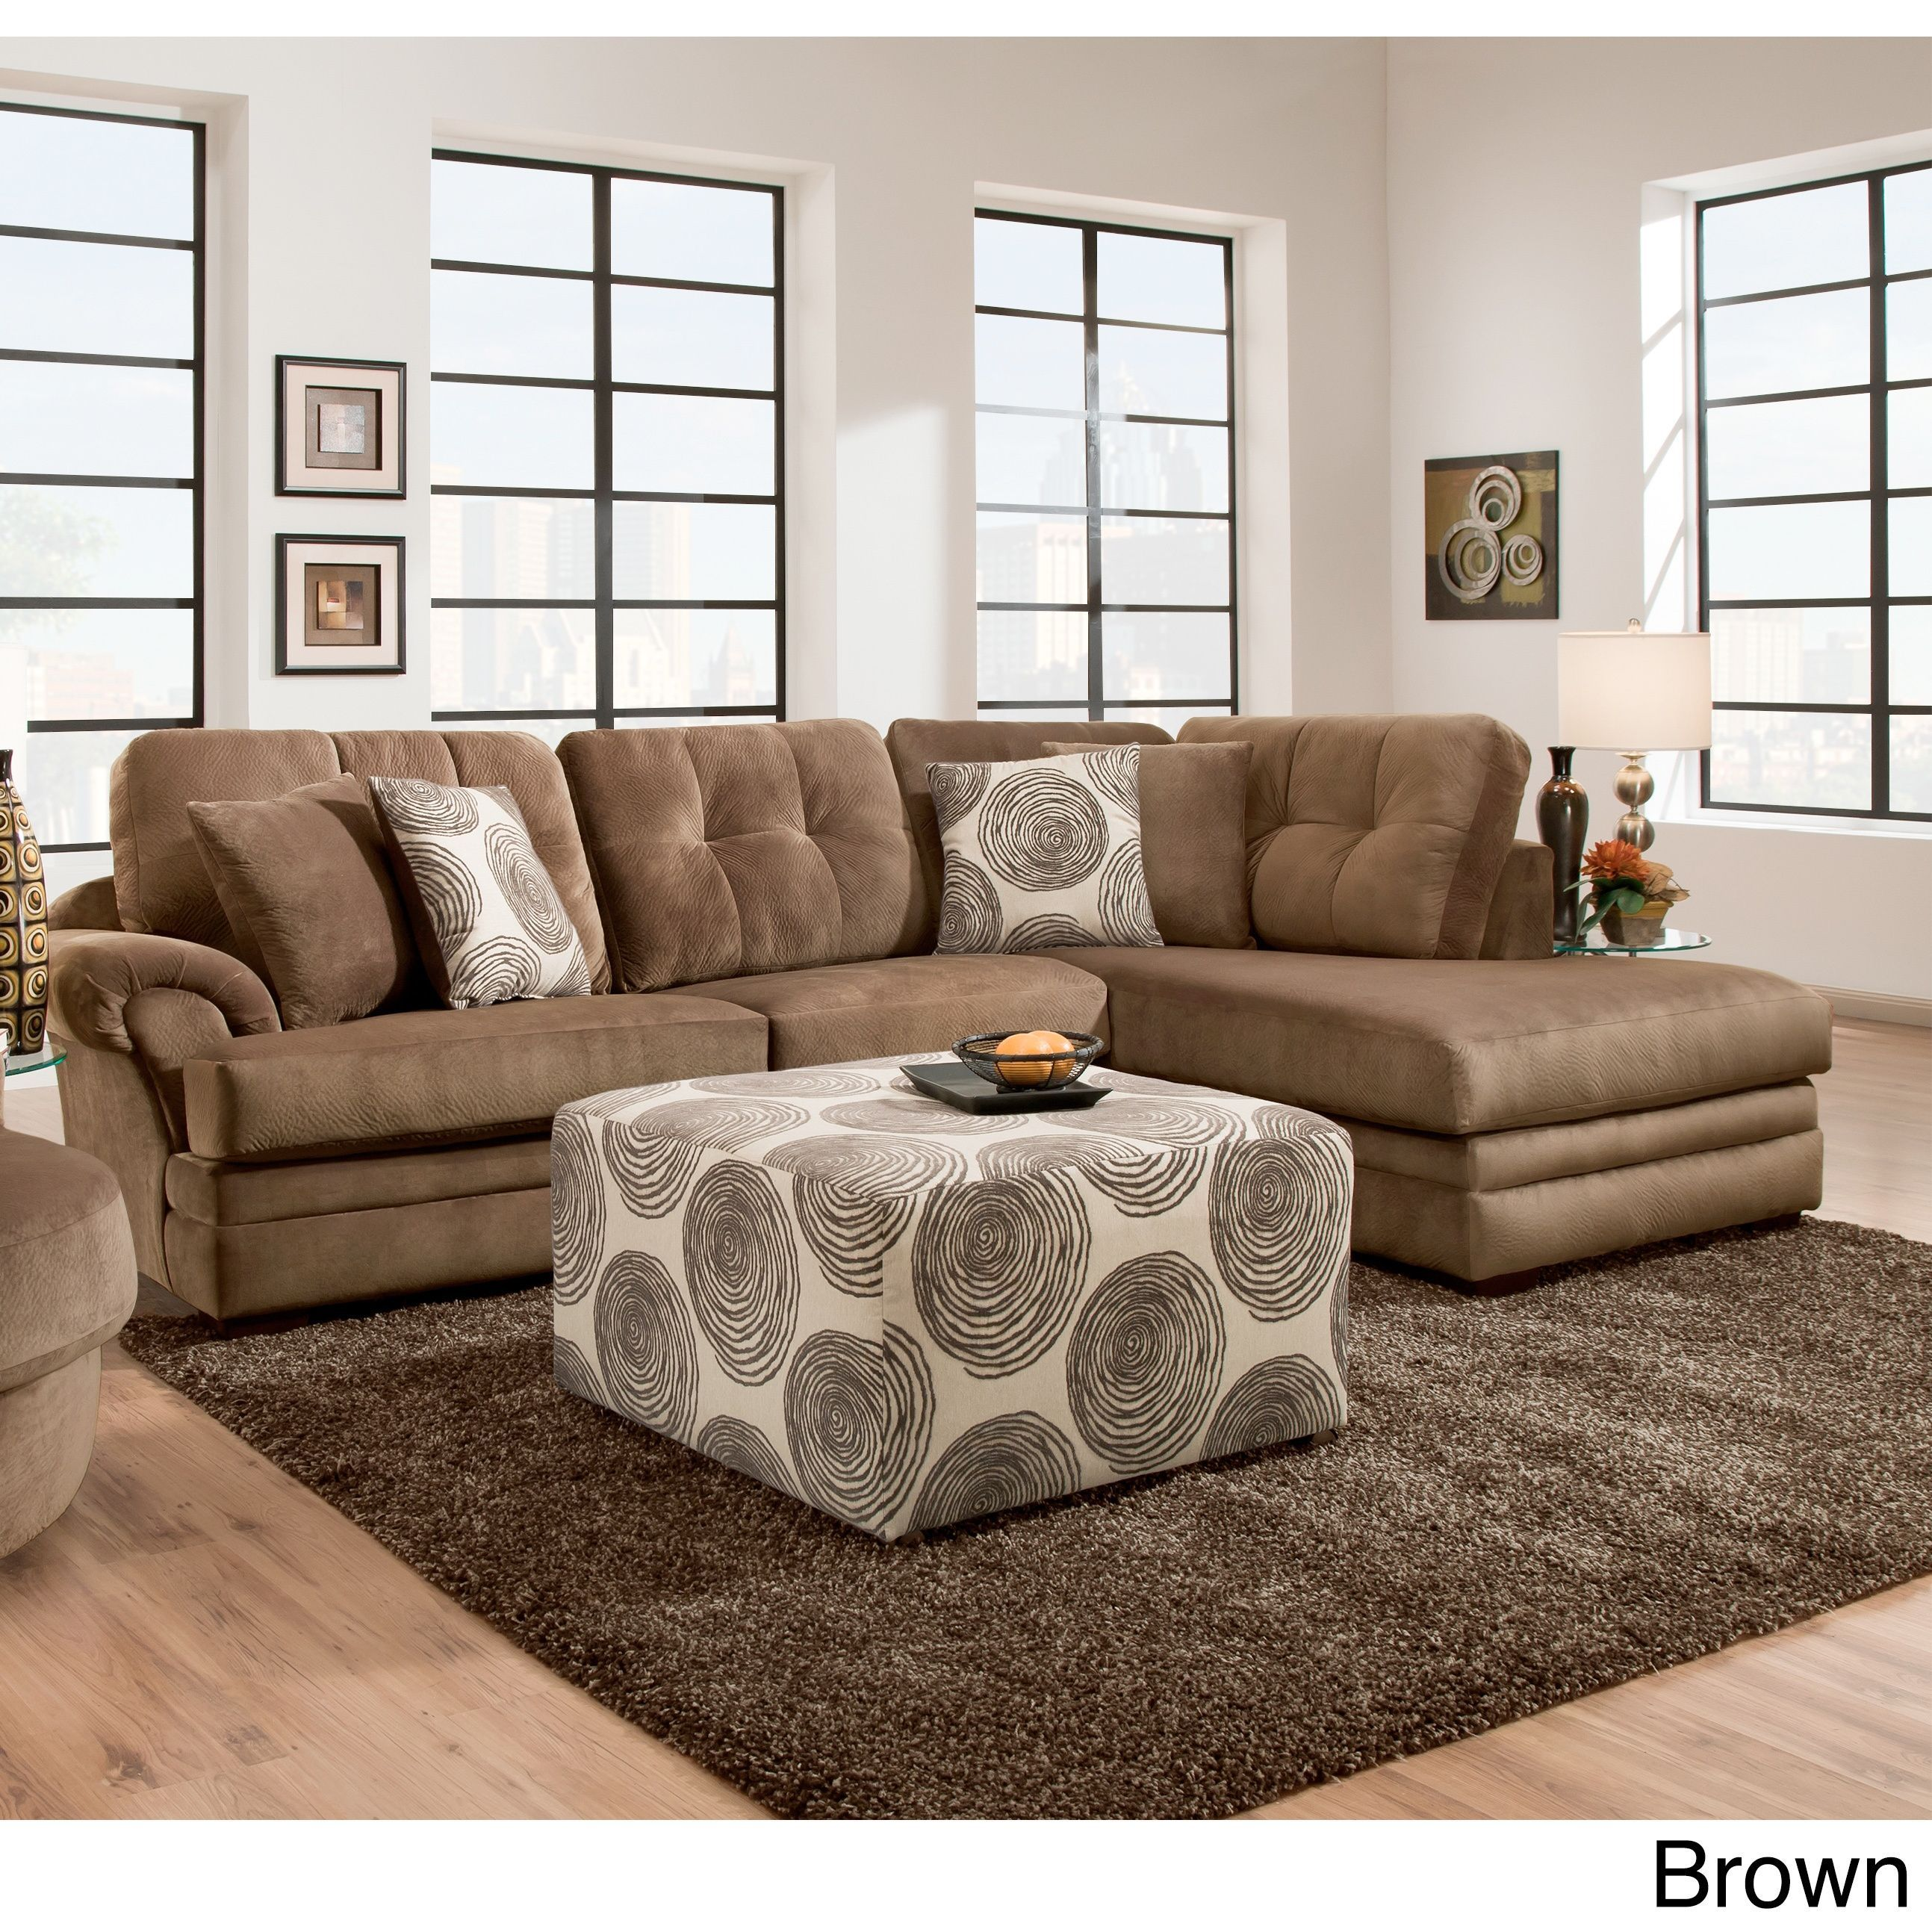 Sofa Trendz Plush Grey and Brown Velvet Sectional Lila Sectional